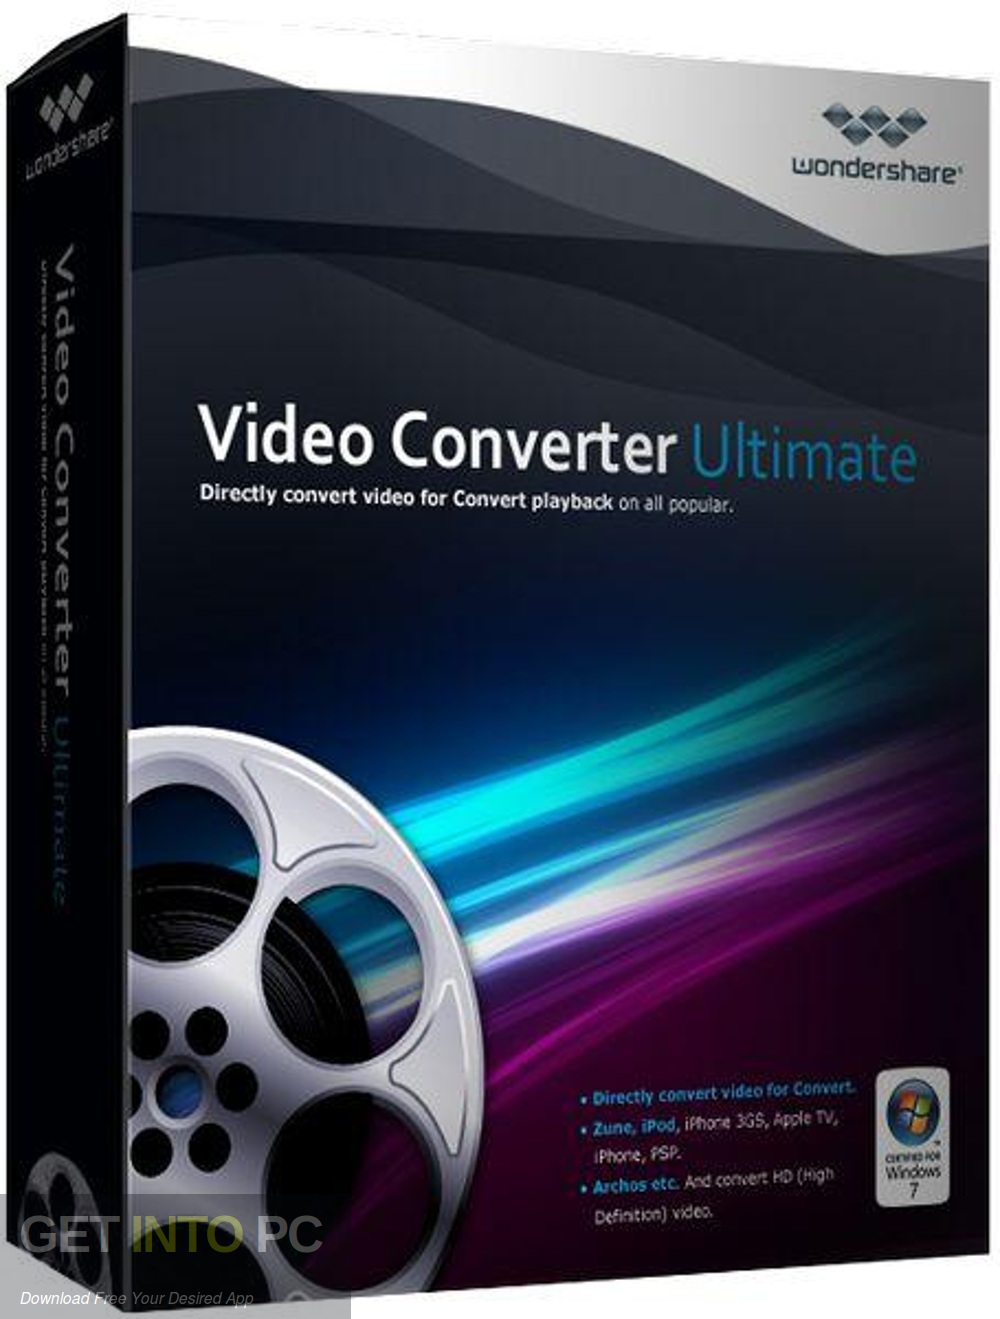 Wondershare Video Converter Ultimate 12.5.1.8 Crack [2021]Free Download